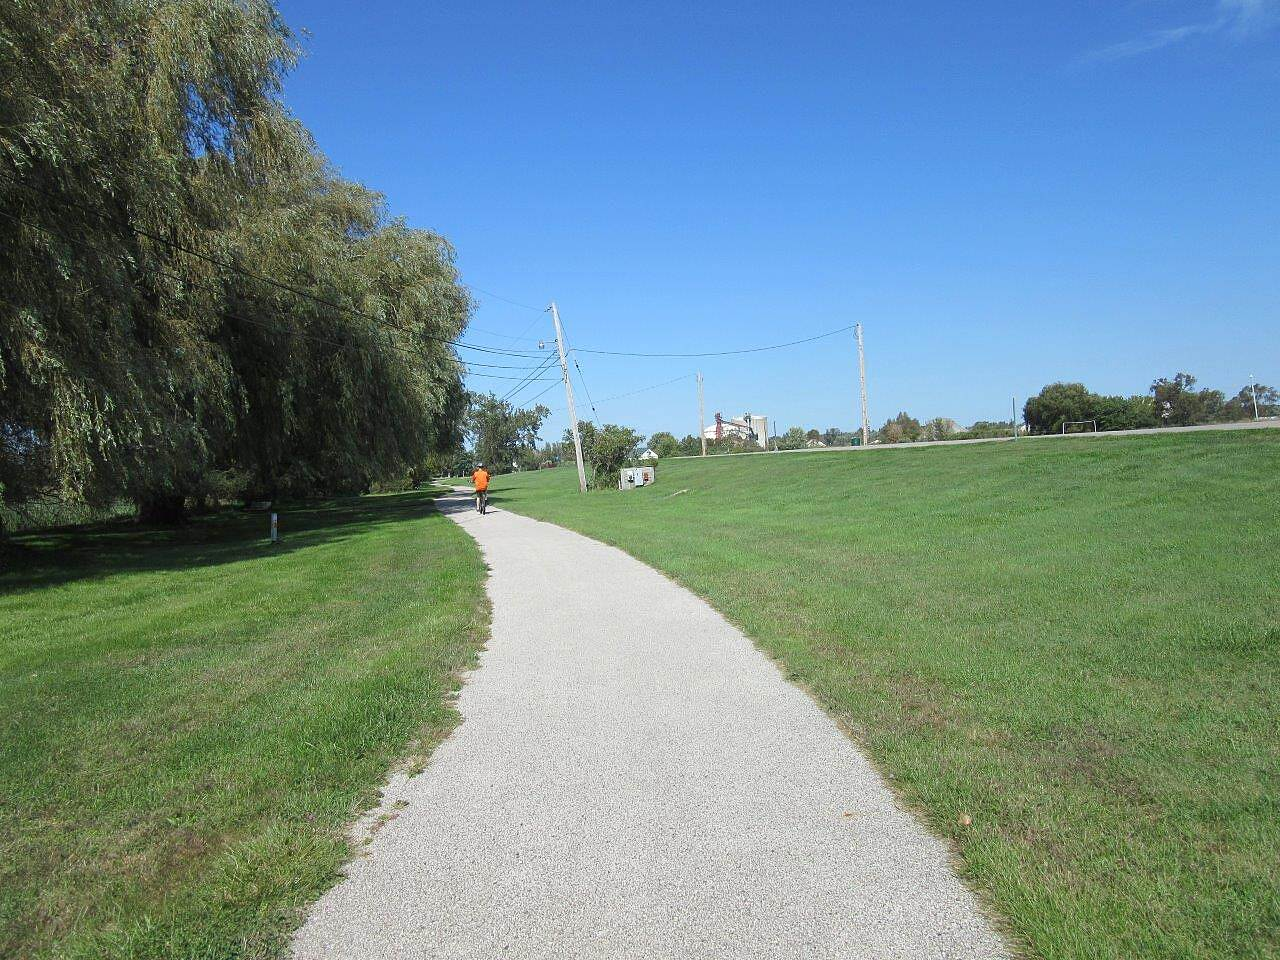 Lakeside Trail Trail Trail going through a park like setting on the edge of Grand Haven